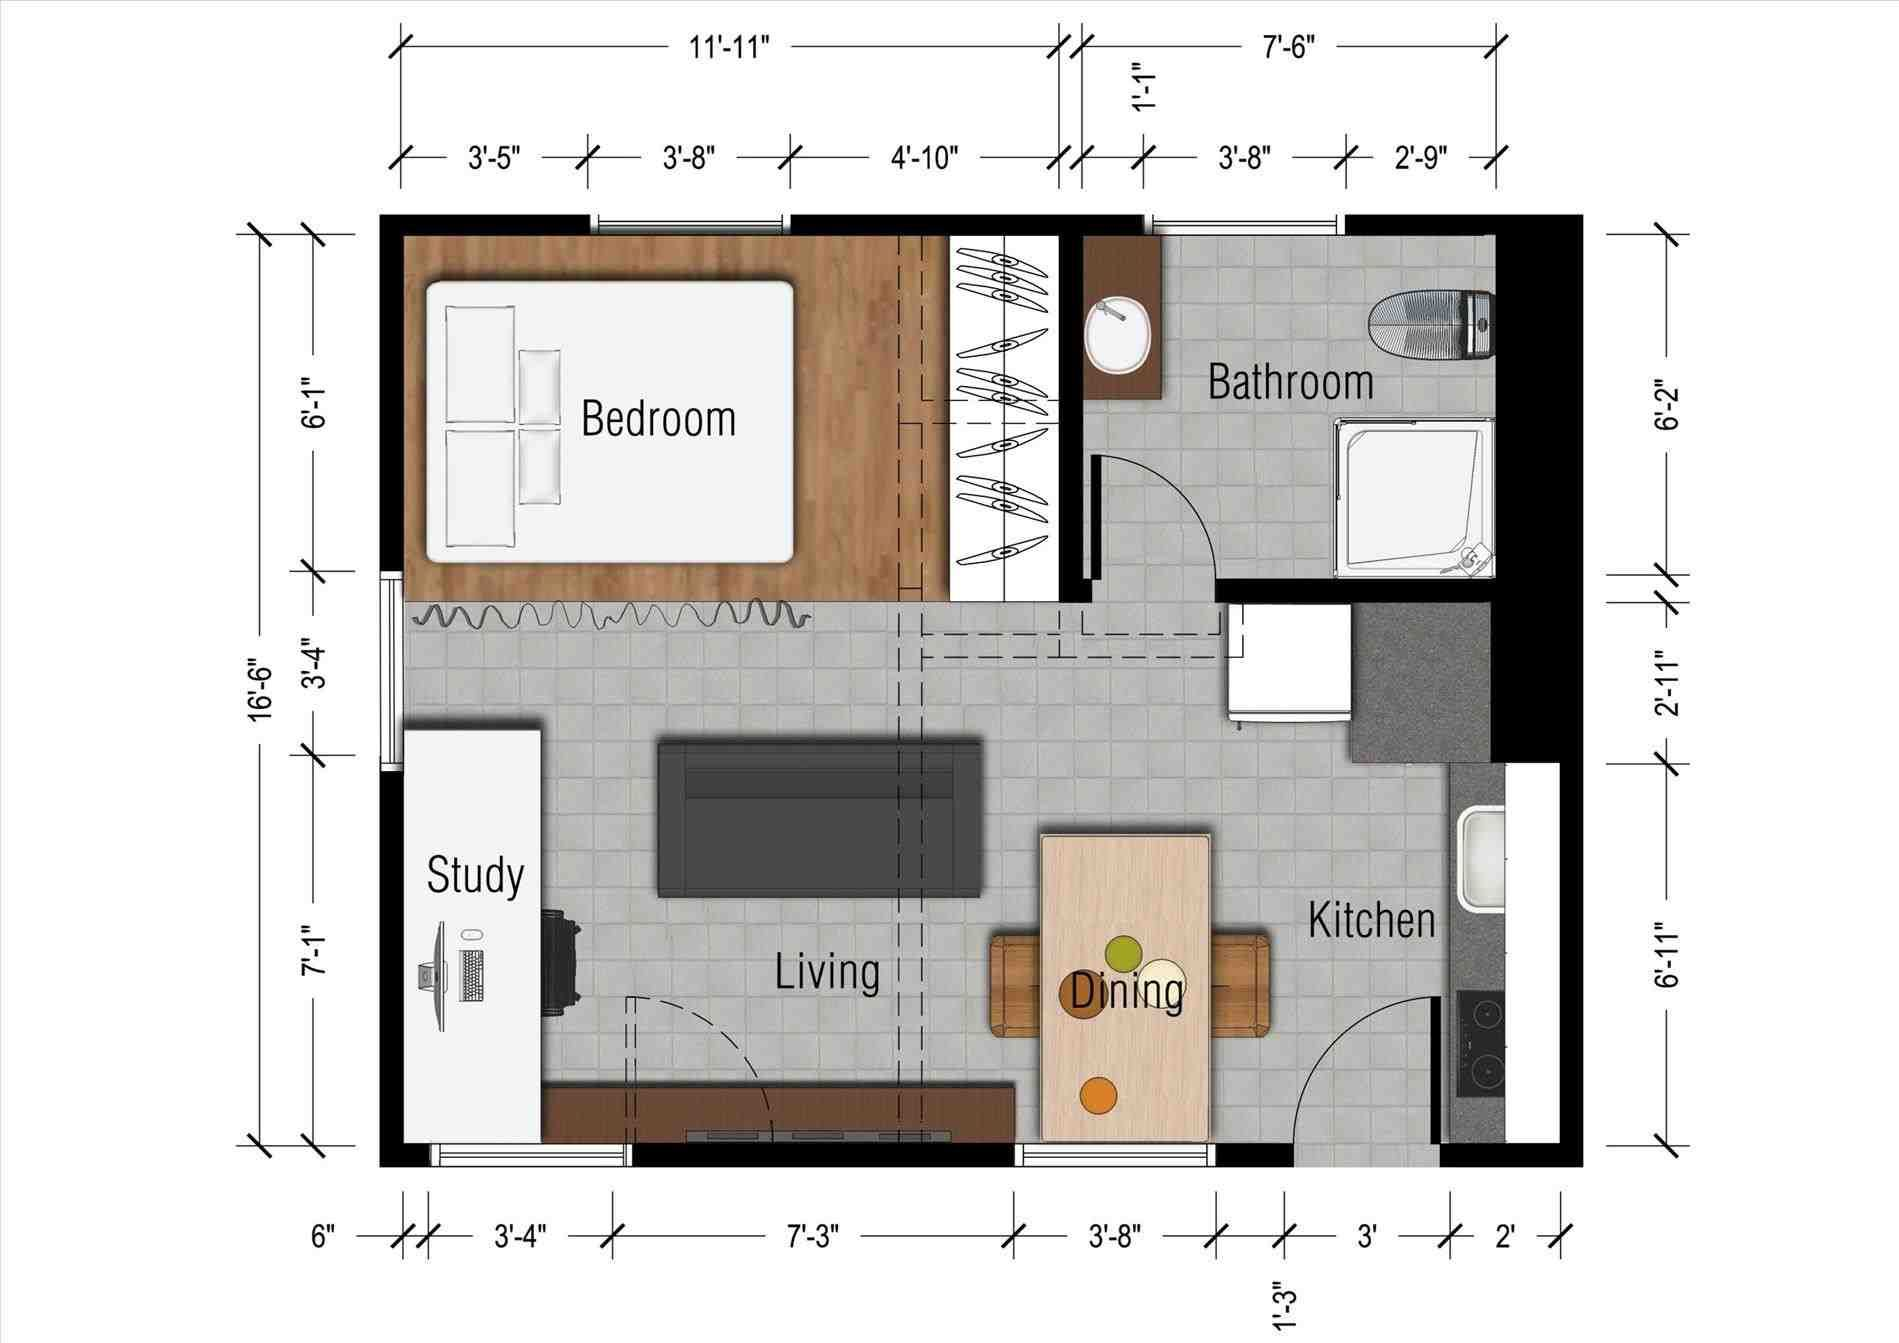 Floor Plan Apartment One Bedroom Apartments 3d Floor Plan Studio 1 2 Bedroom Apartments In A Small Apartment Plans Studio Apartment Plan Studio Floor Plans